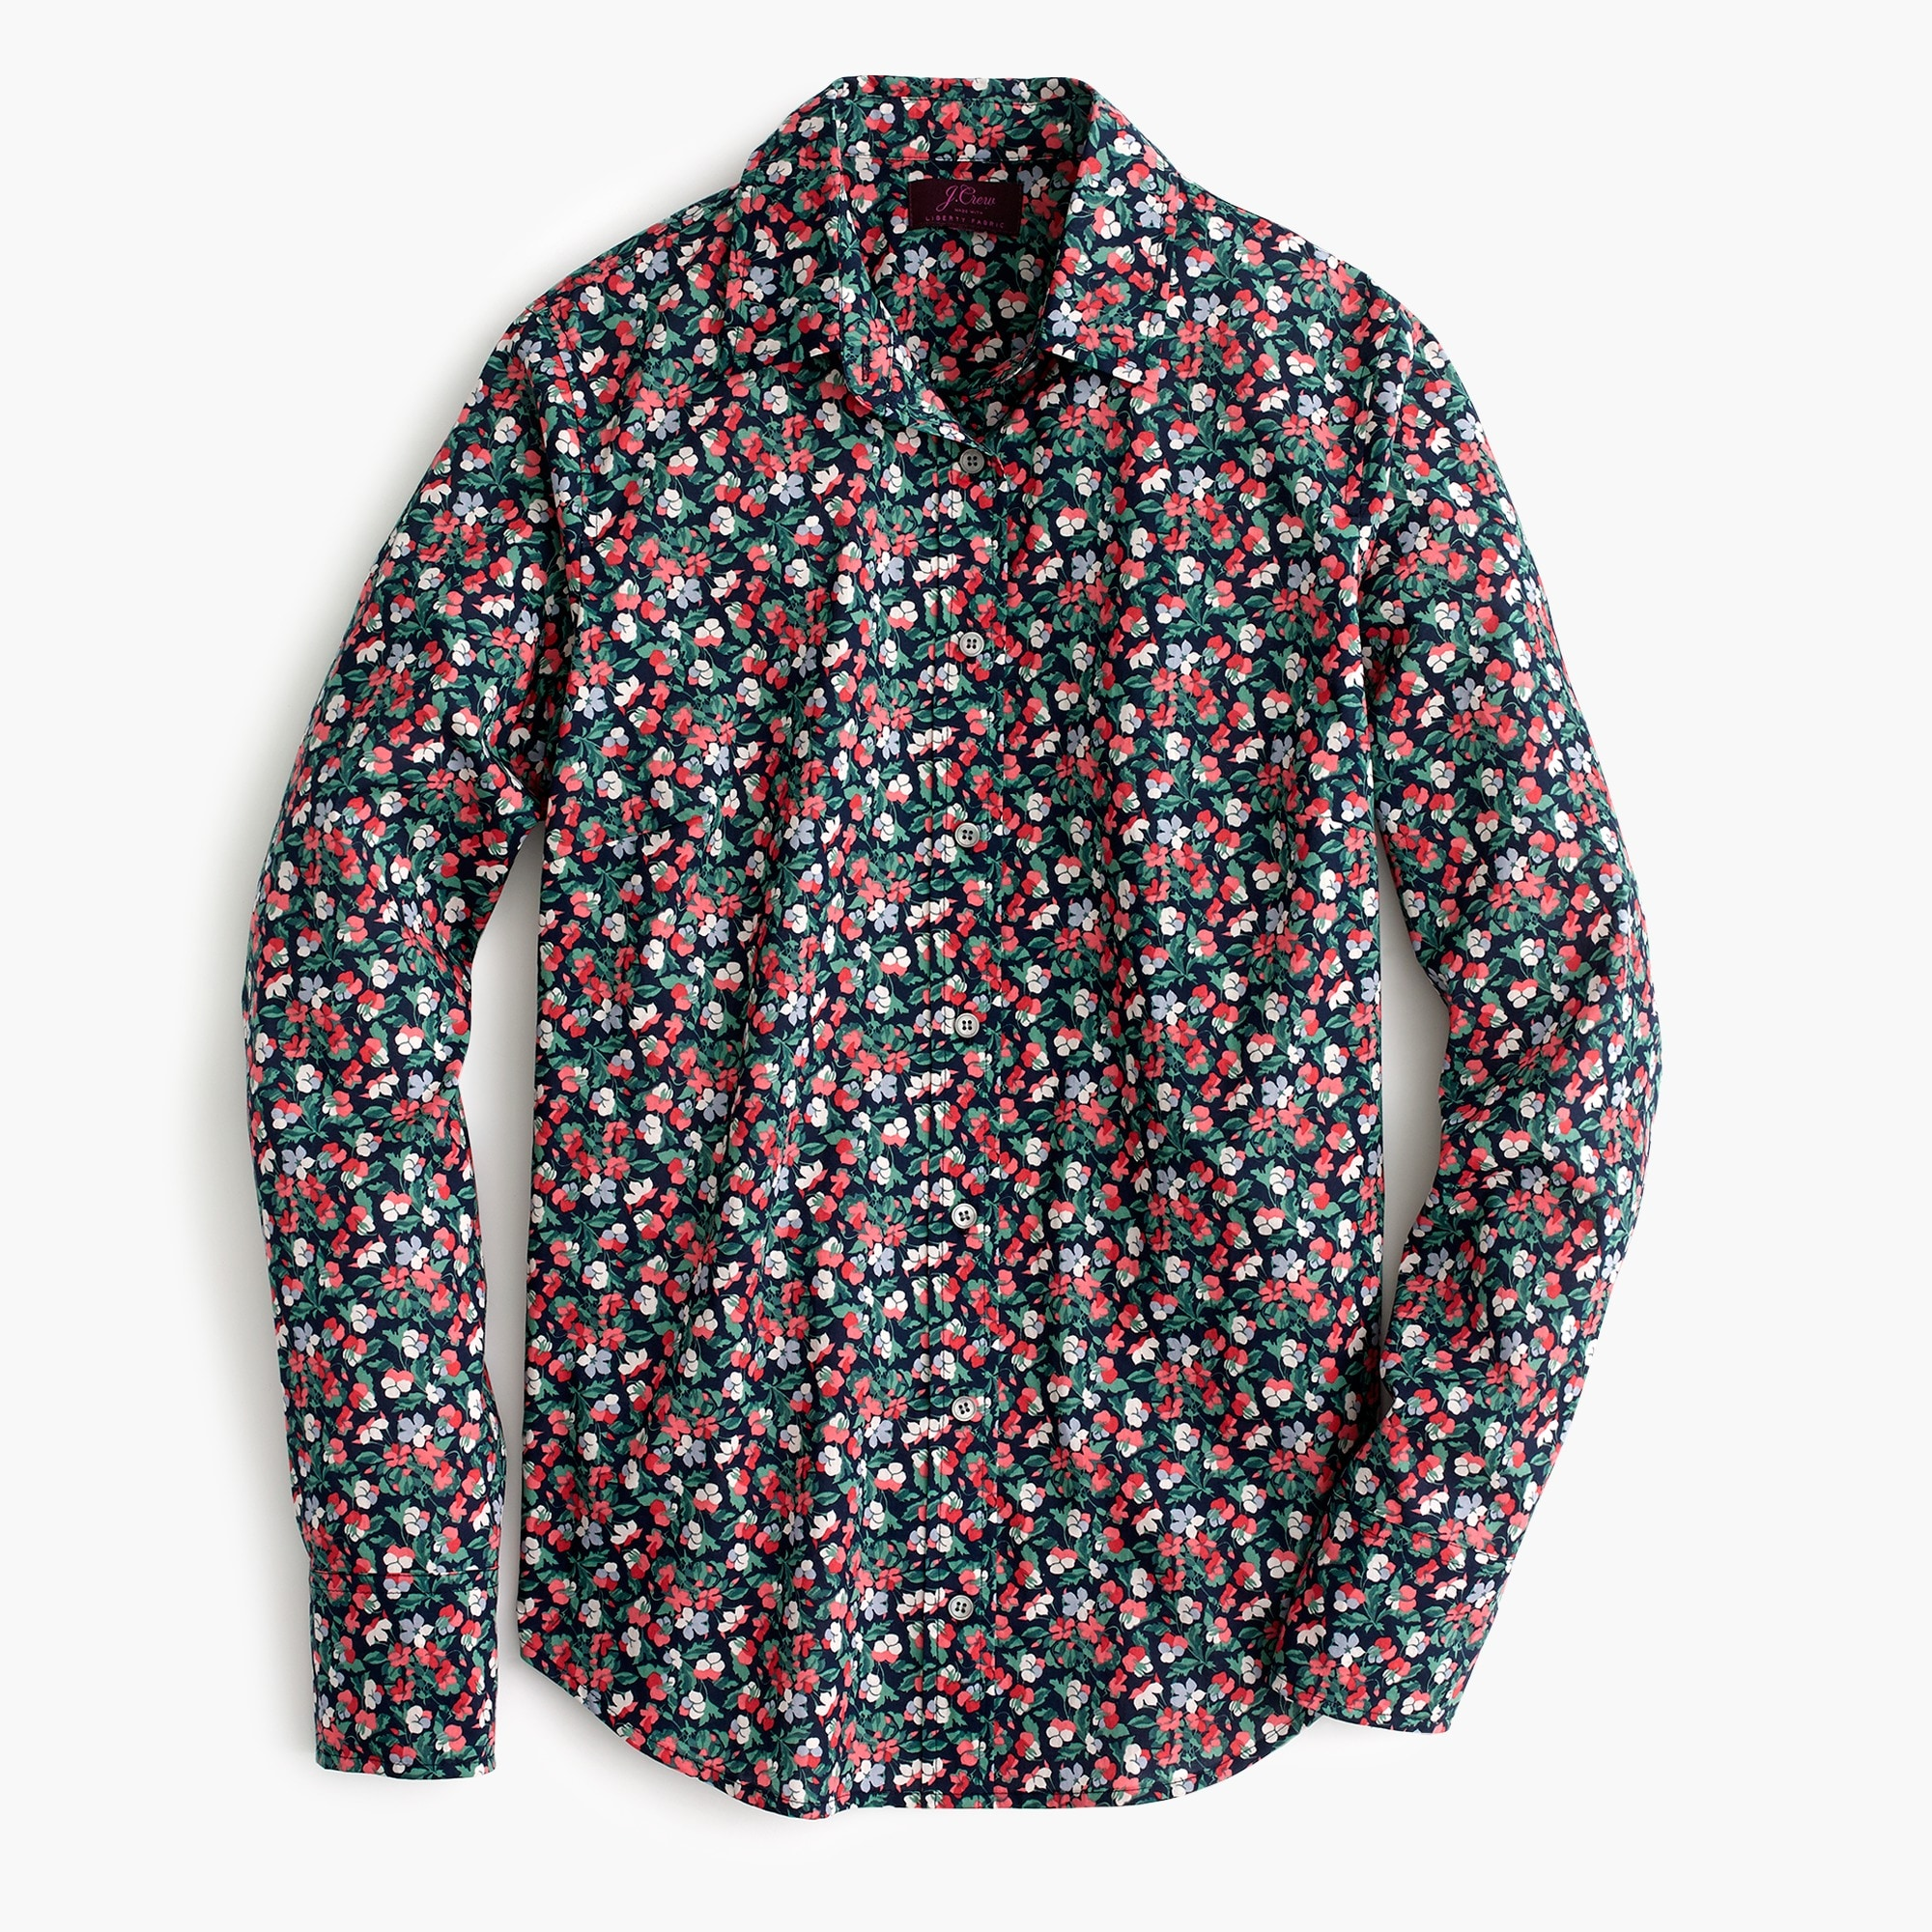 Slim perfect shirt in Liberty® Sarah floral